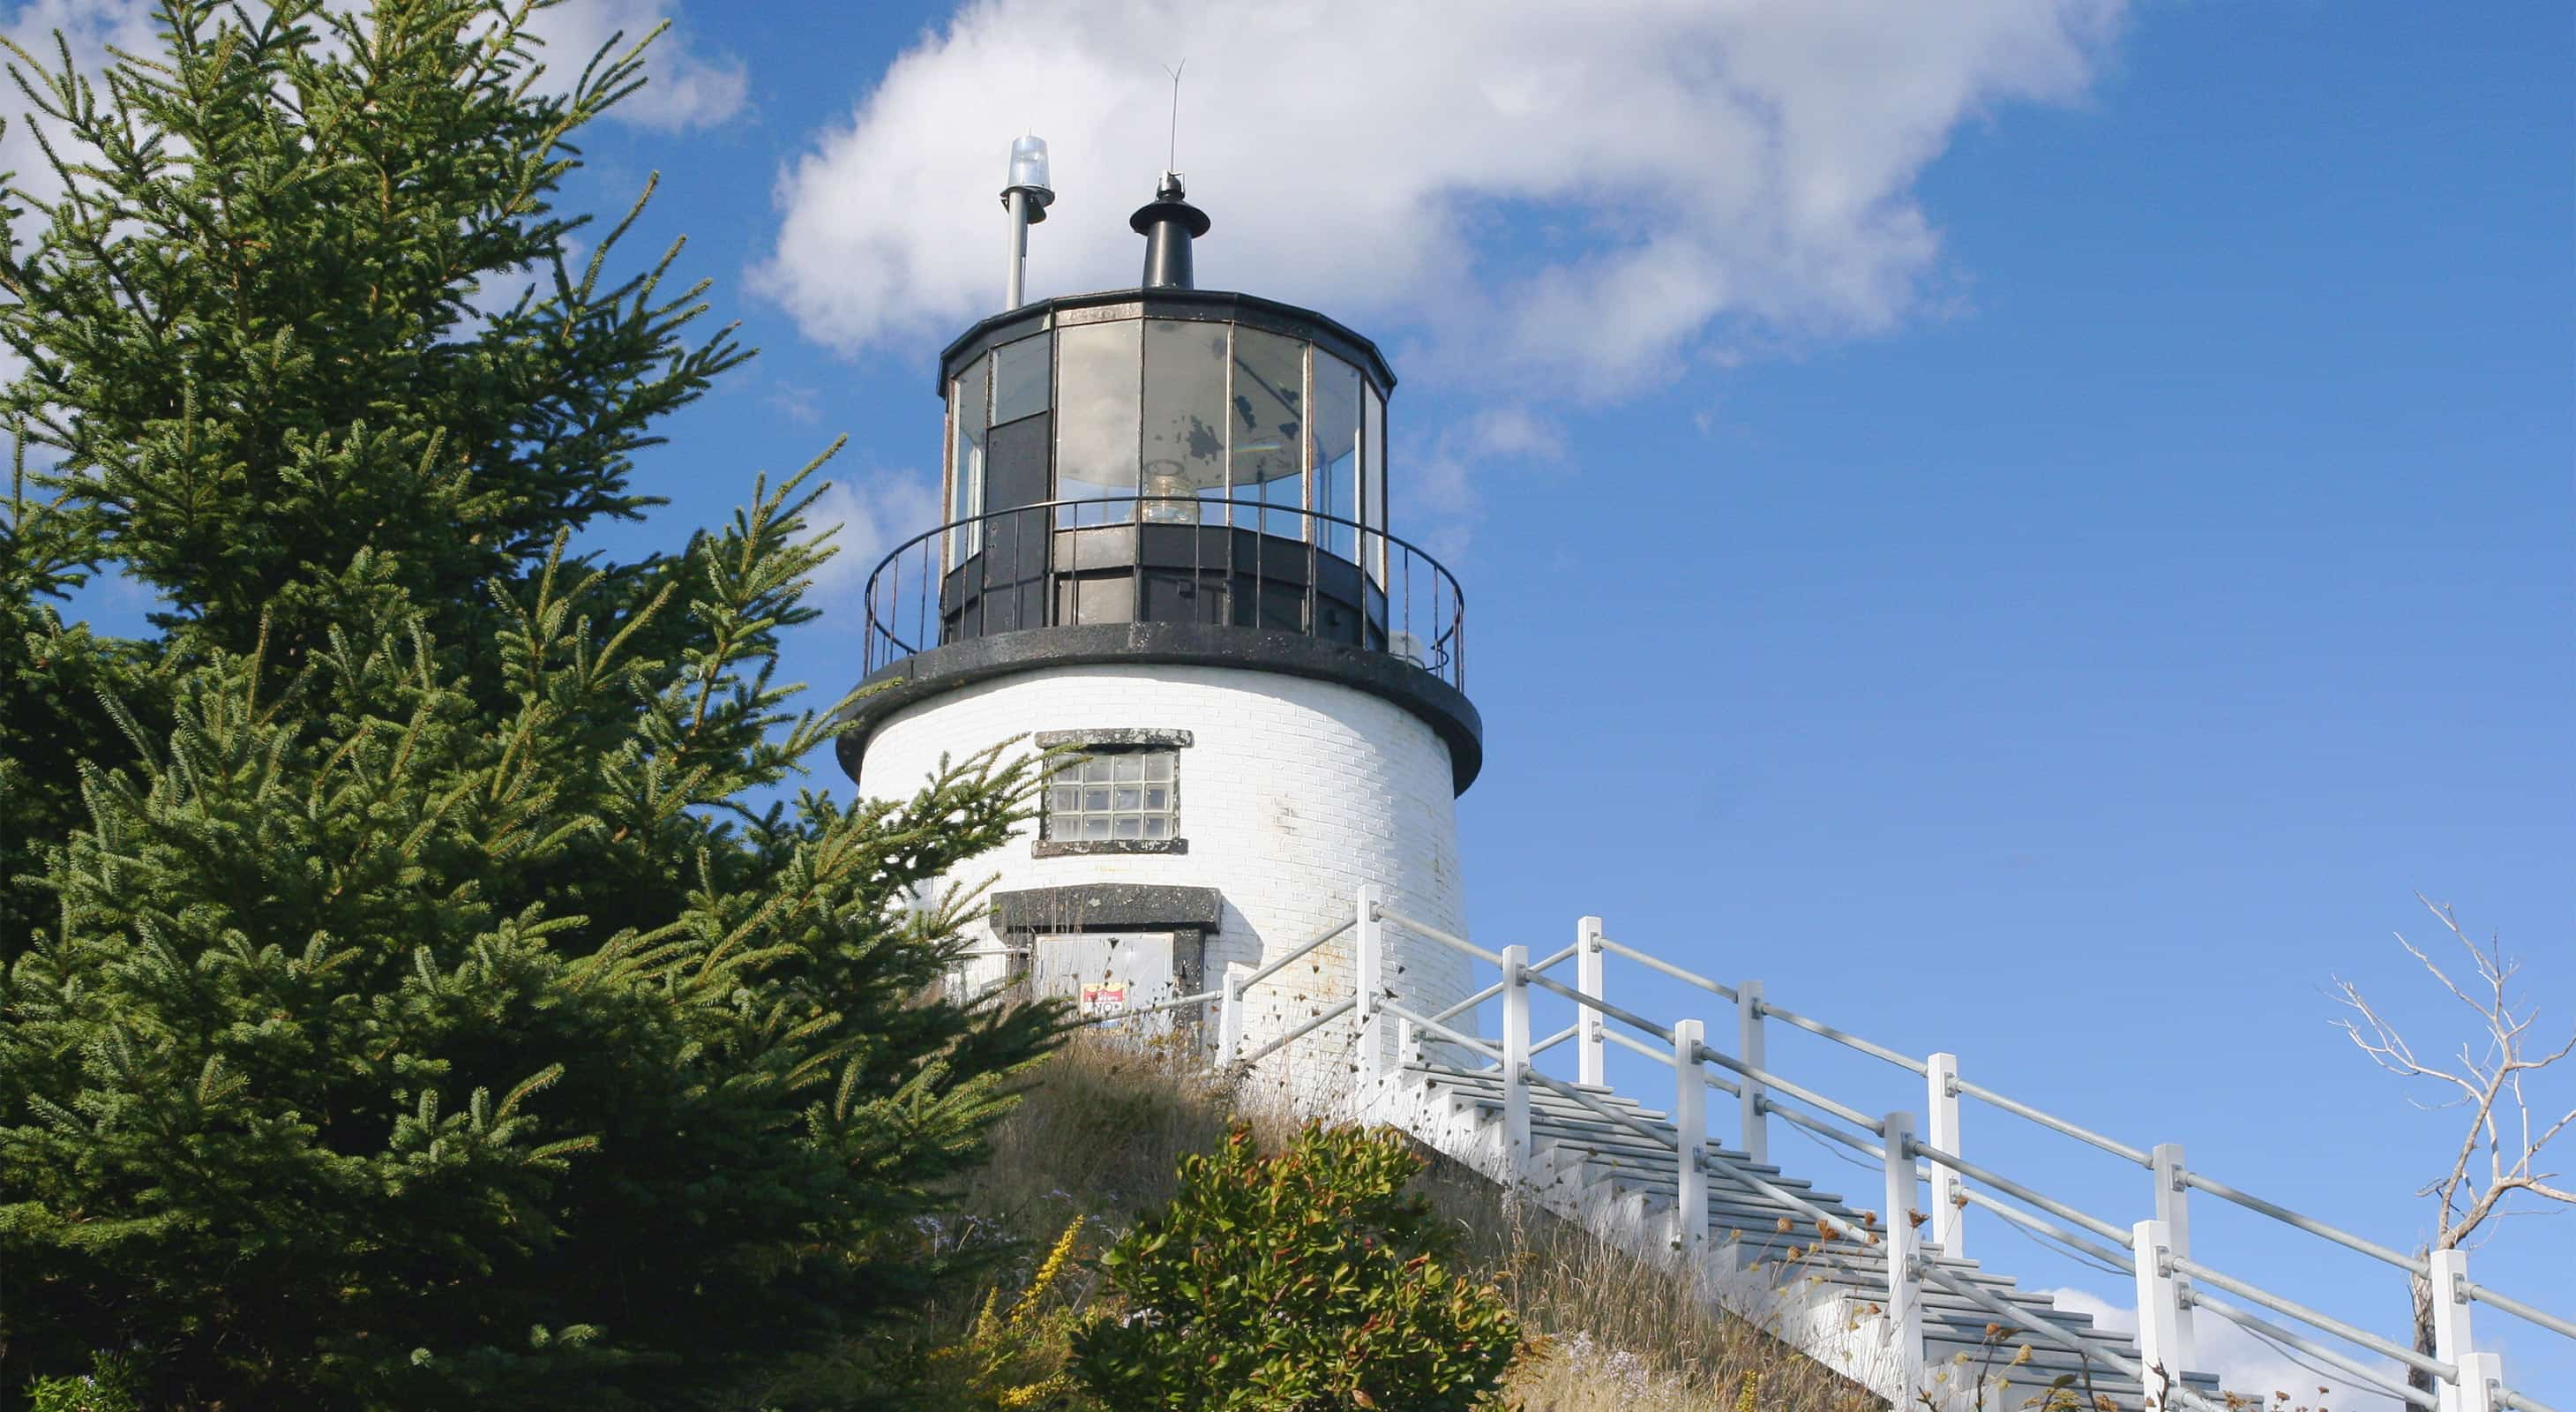 White lighthouse with black cap against blue sky and pine trees.